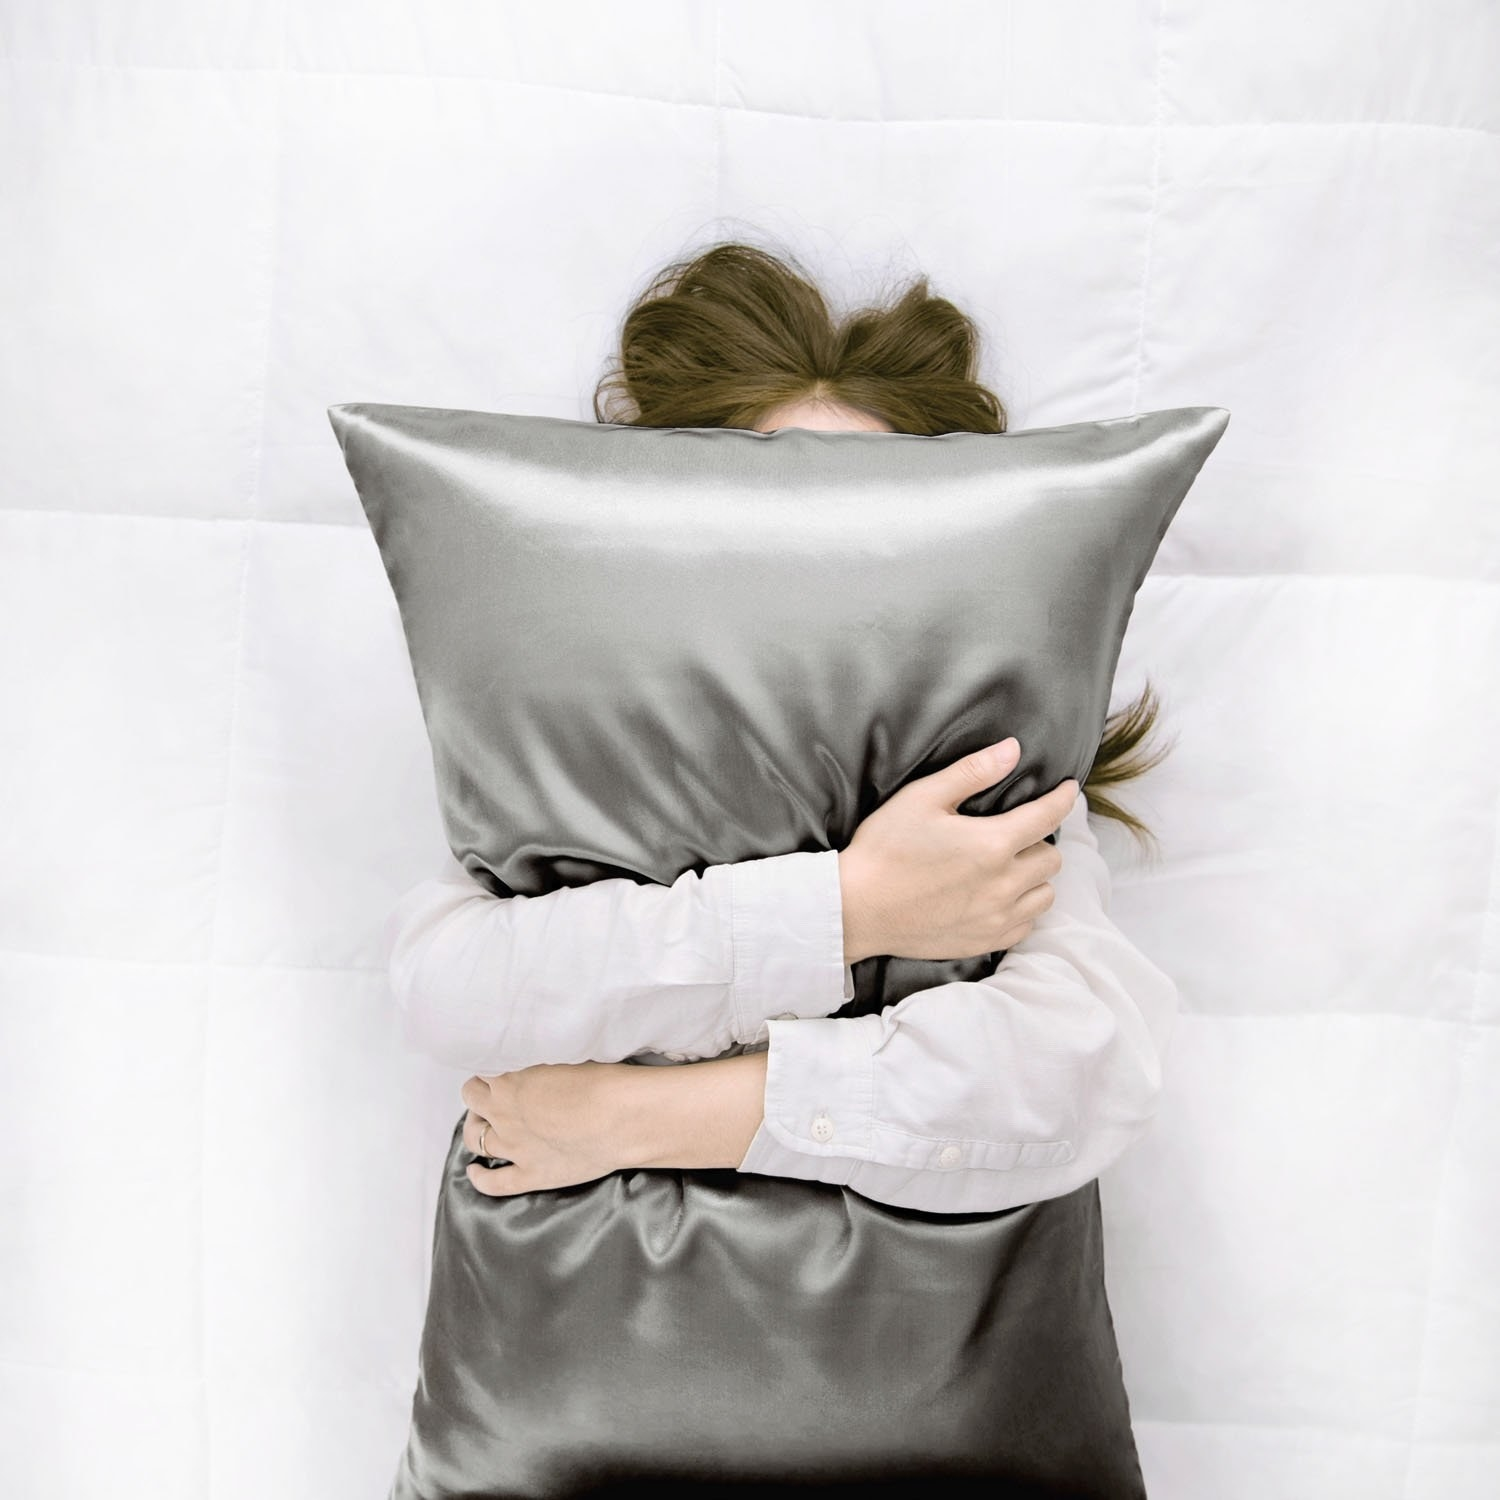 A model clutching a shiny grey satin pillow